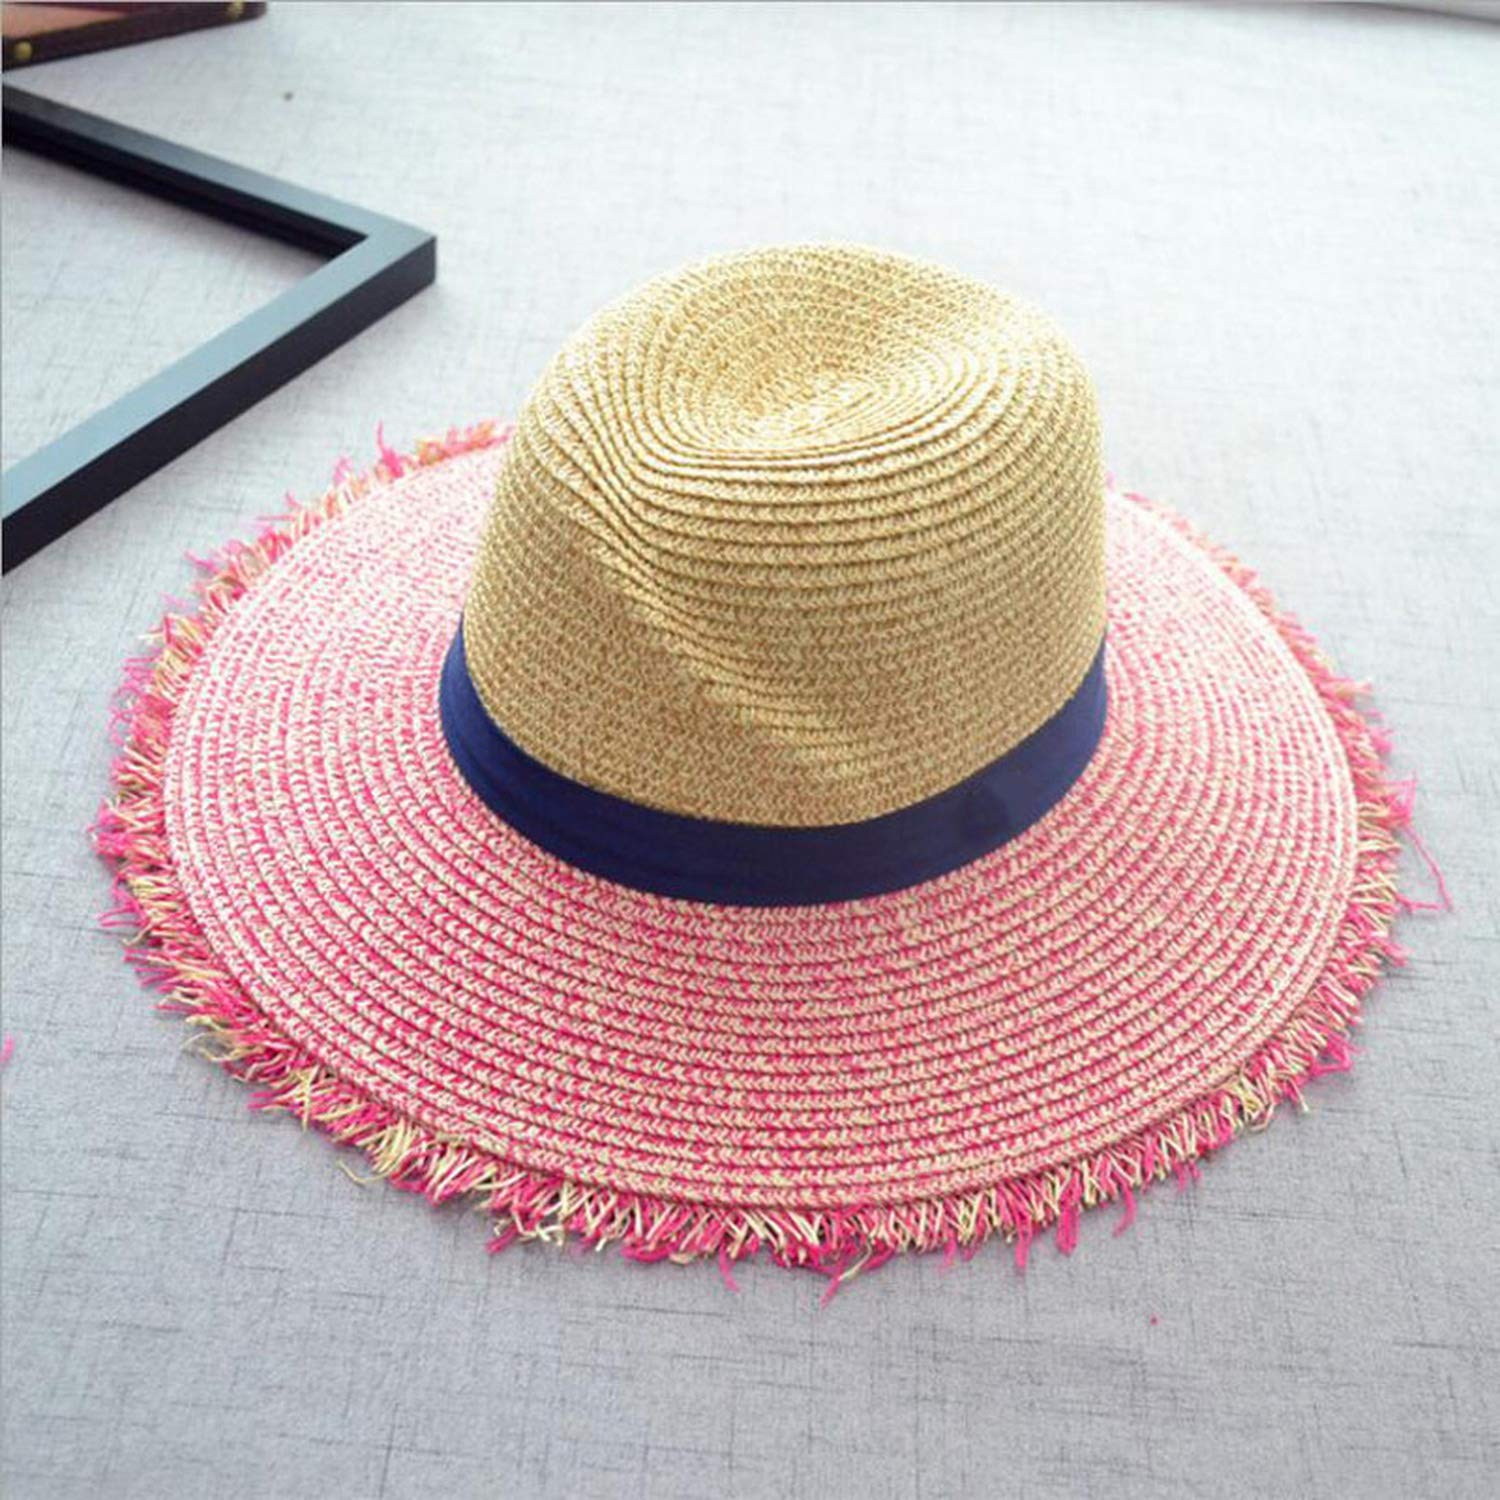 Straw Hat Summer Letter Hats for Women Sun Shade Tourism Boater Hat,Beige